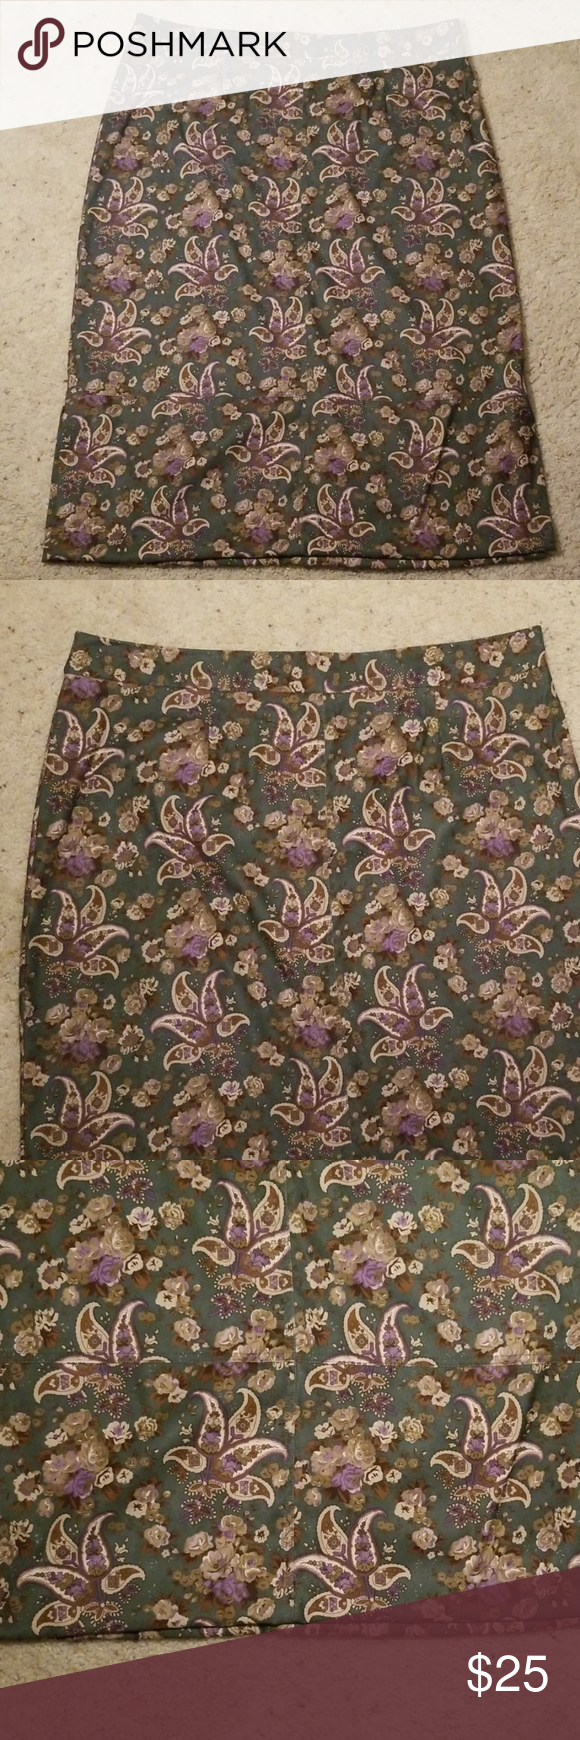 Jaclyn Smith Classic Full Length Skirt Floral And Paisley Pattern Size 24w Skirts